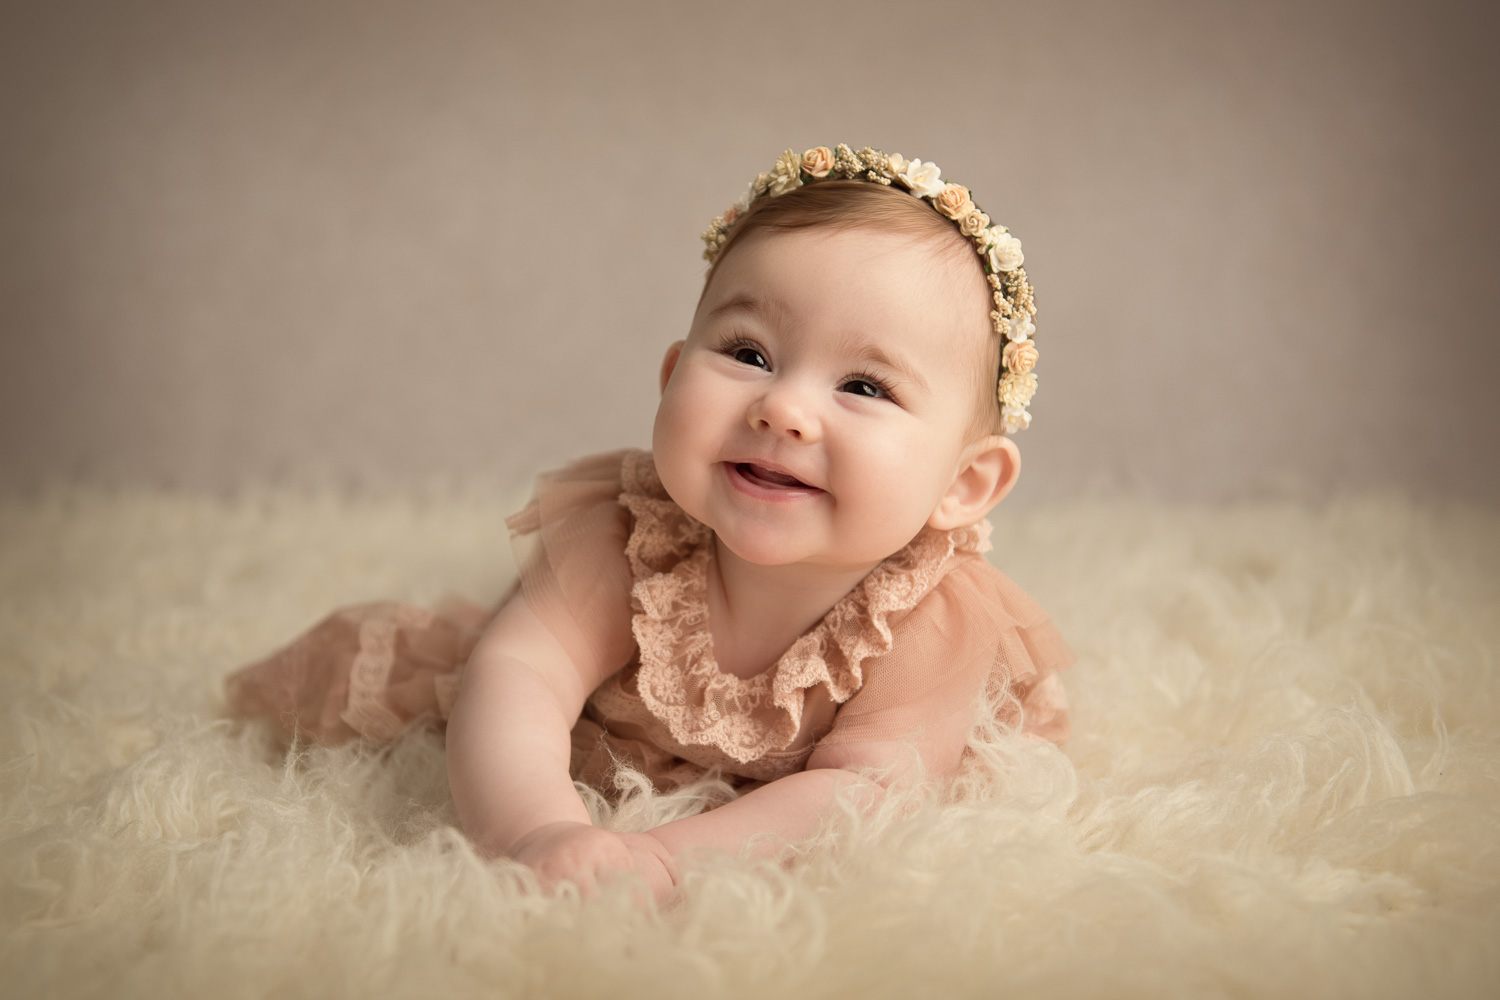 baby photography by siobhan kelly photography